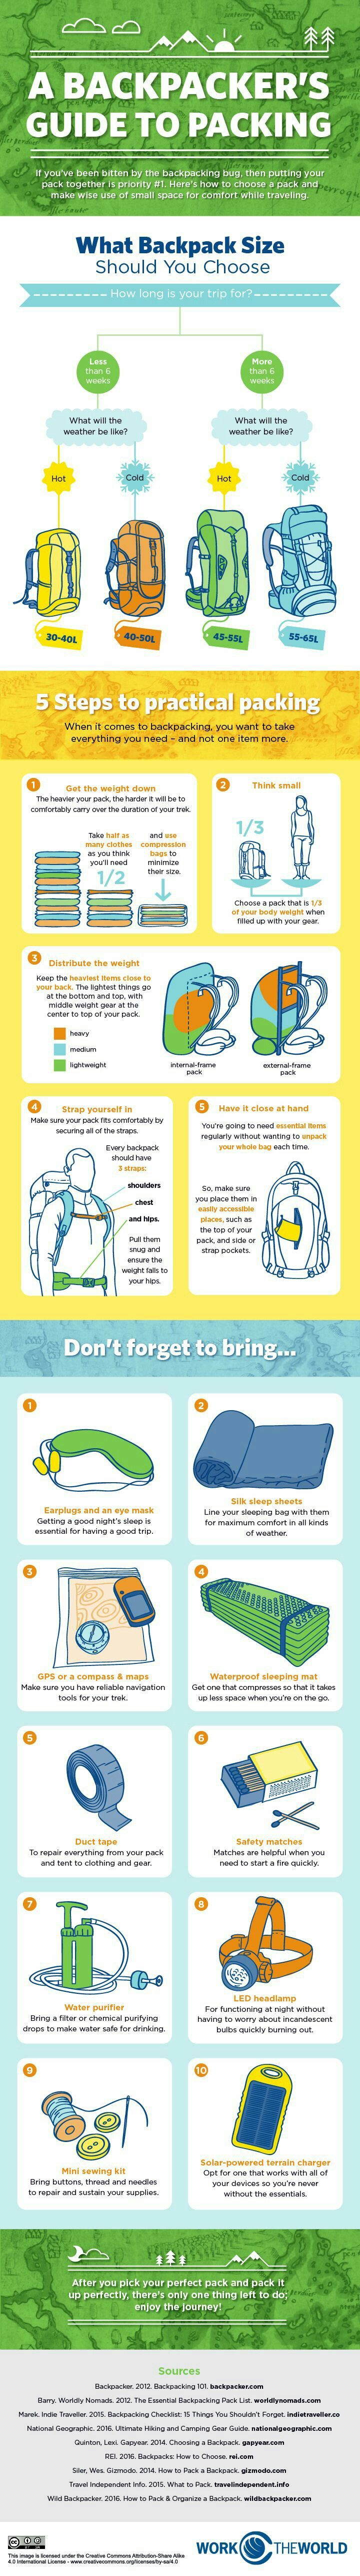 A Backpacker's Guide to Packing!!